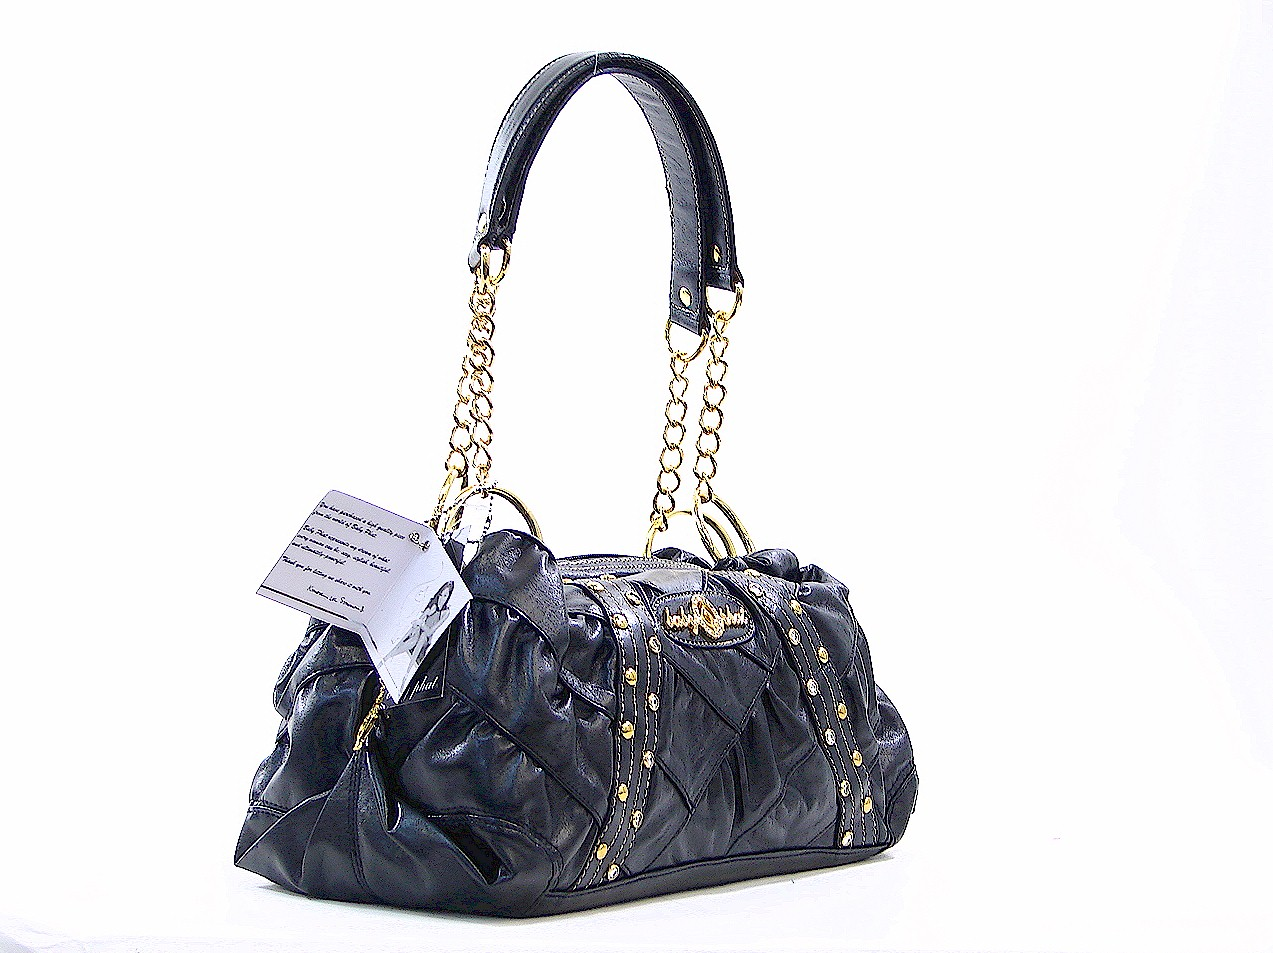 Baby Phat Black Princess Basic Iii Four Ring Satchel Handbag By